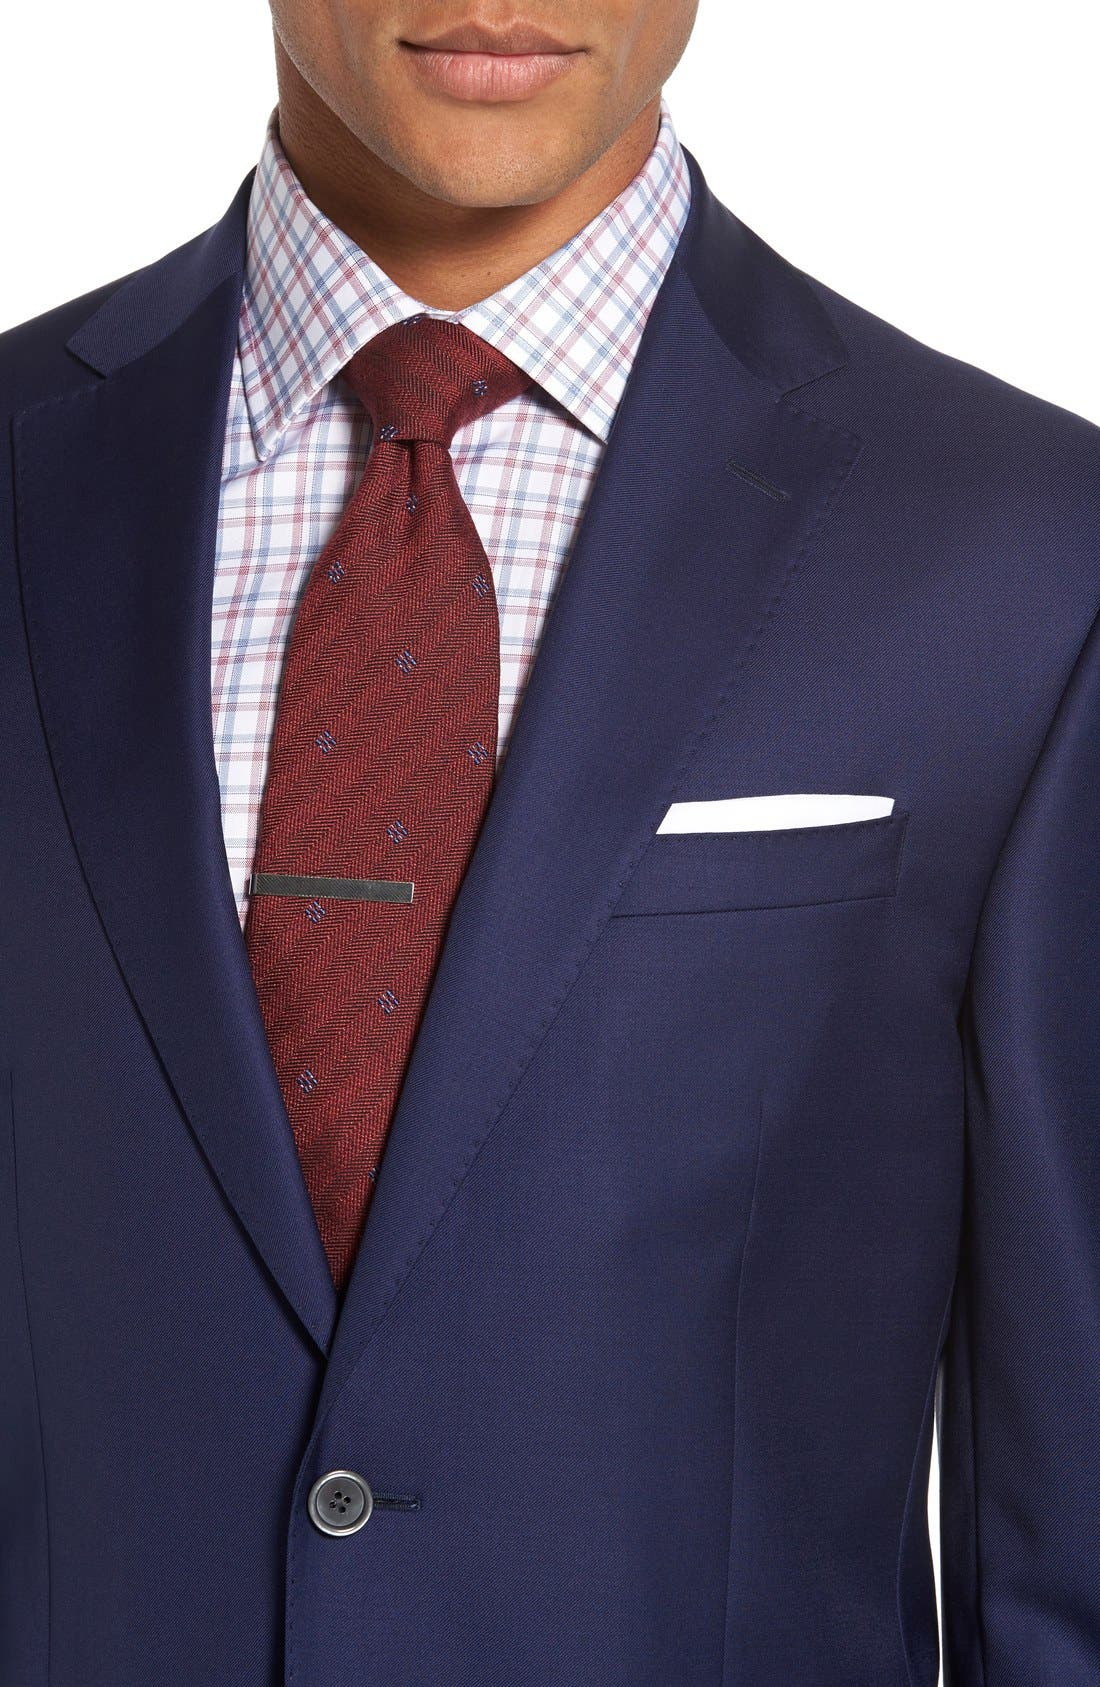 DAVID DONAHUE,                             'Connor' Classic Fit Solid Wool Sport Coat,                             Alternate thumbnail 4, color,                             NAVY